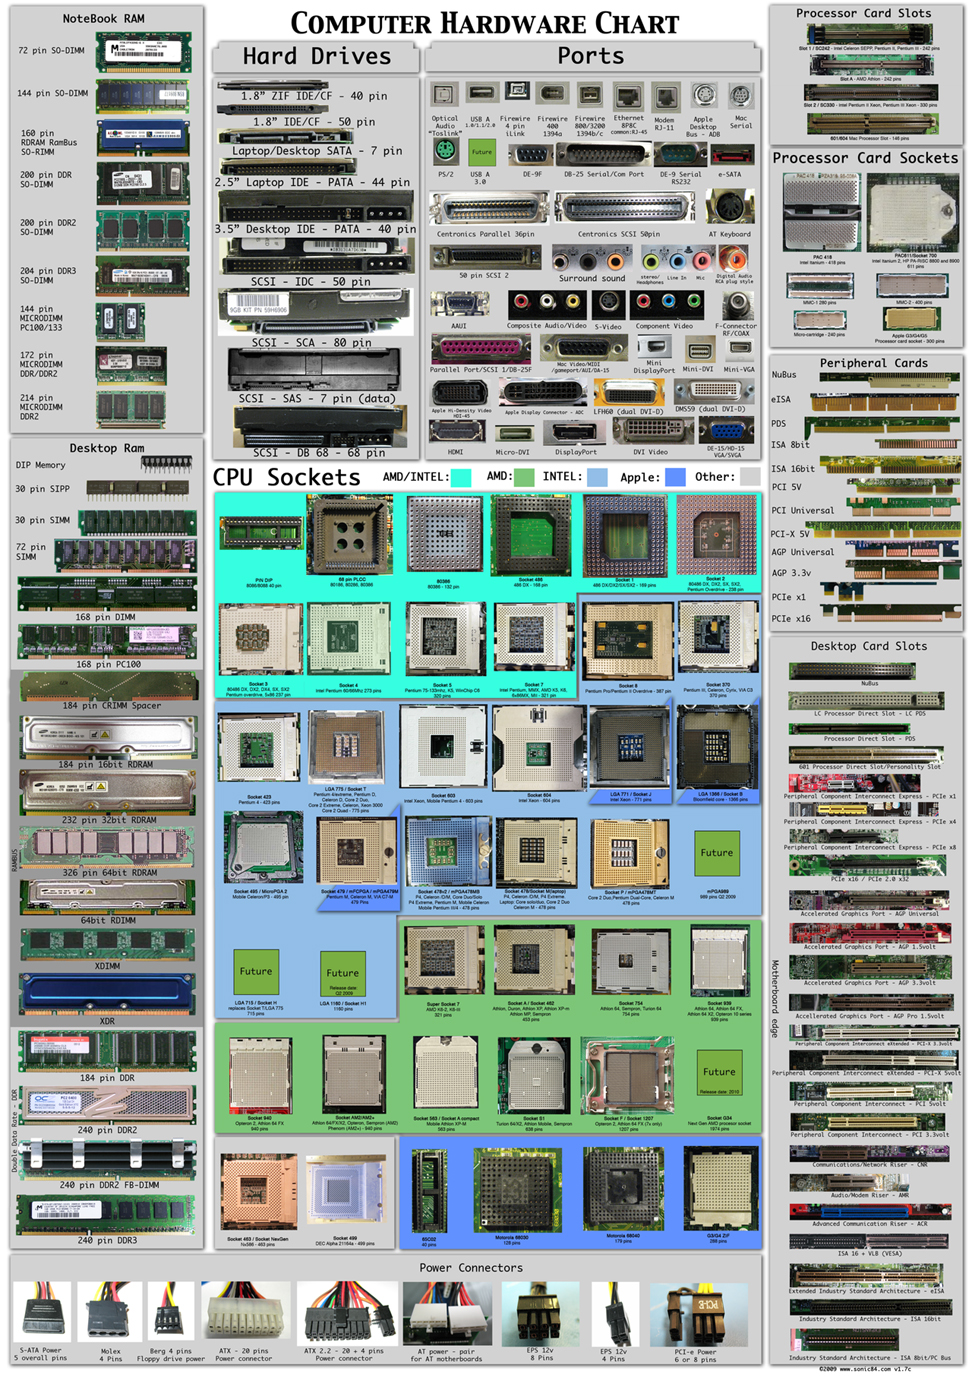 medium resolution of ultimate computer hardware lists charts types connectors ports computer ports computer ports diagram desktop computer ports diagram